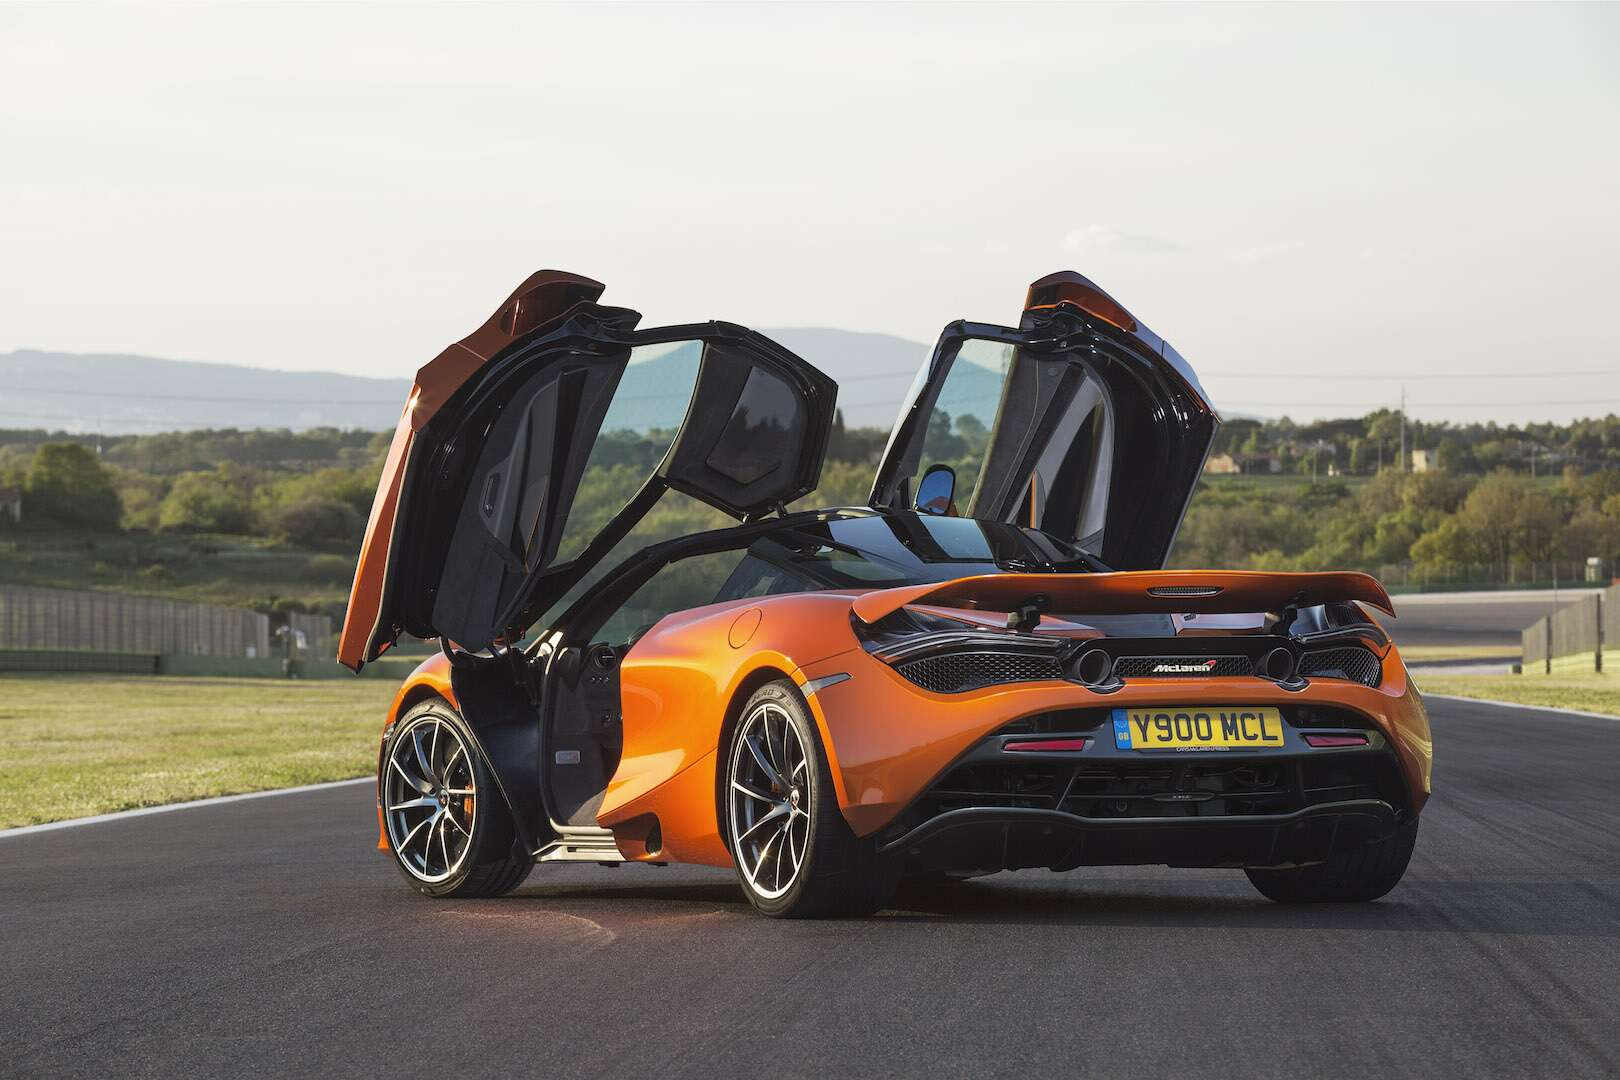 2018 mclaren 720s a 212 mph roman holiday the drive. Black Bedroom Furniture Sets. Home Design Ideas